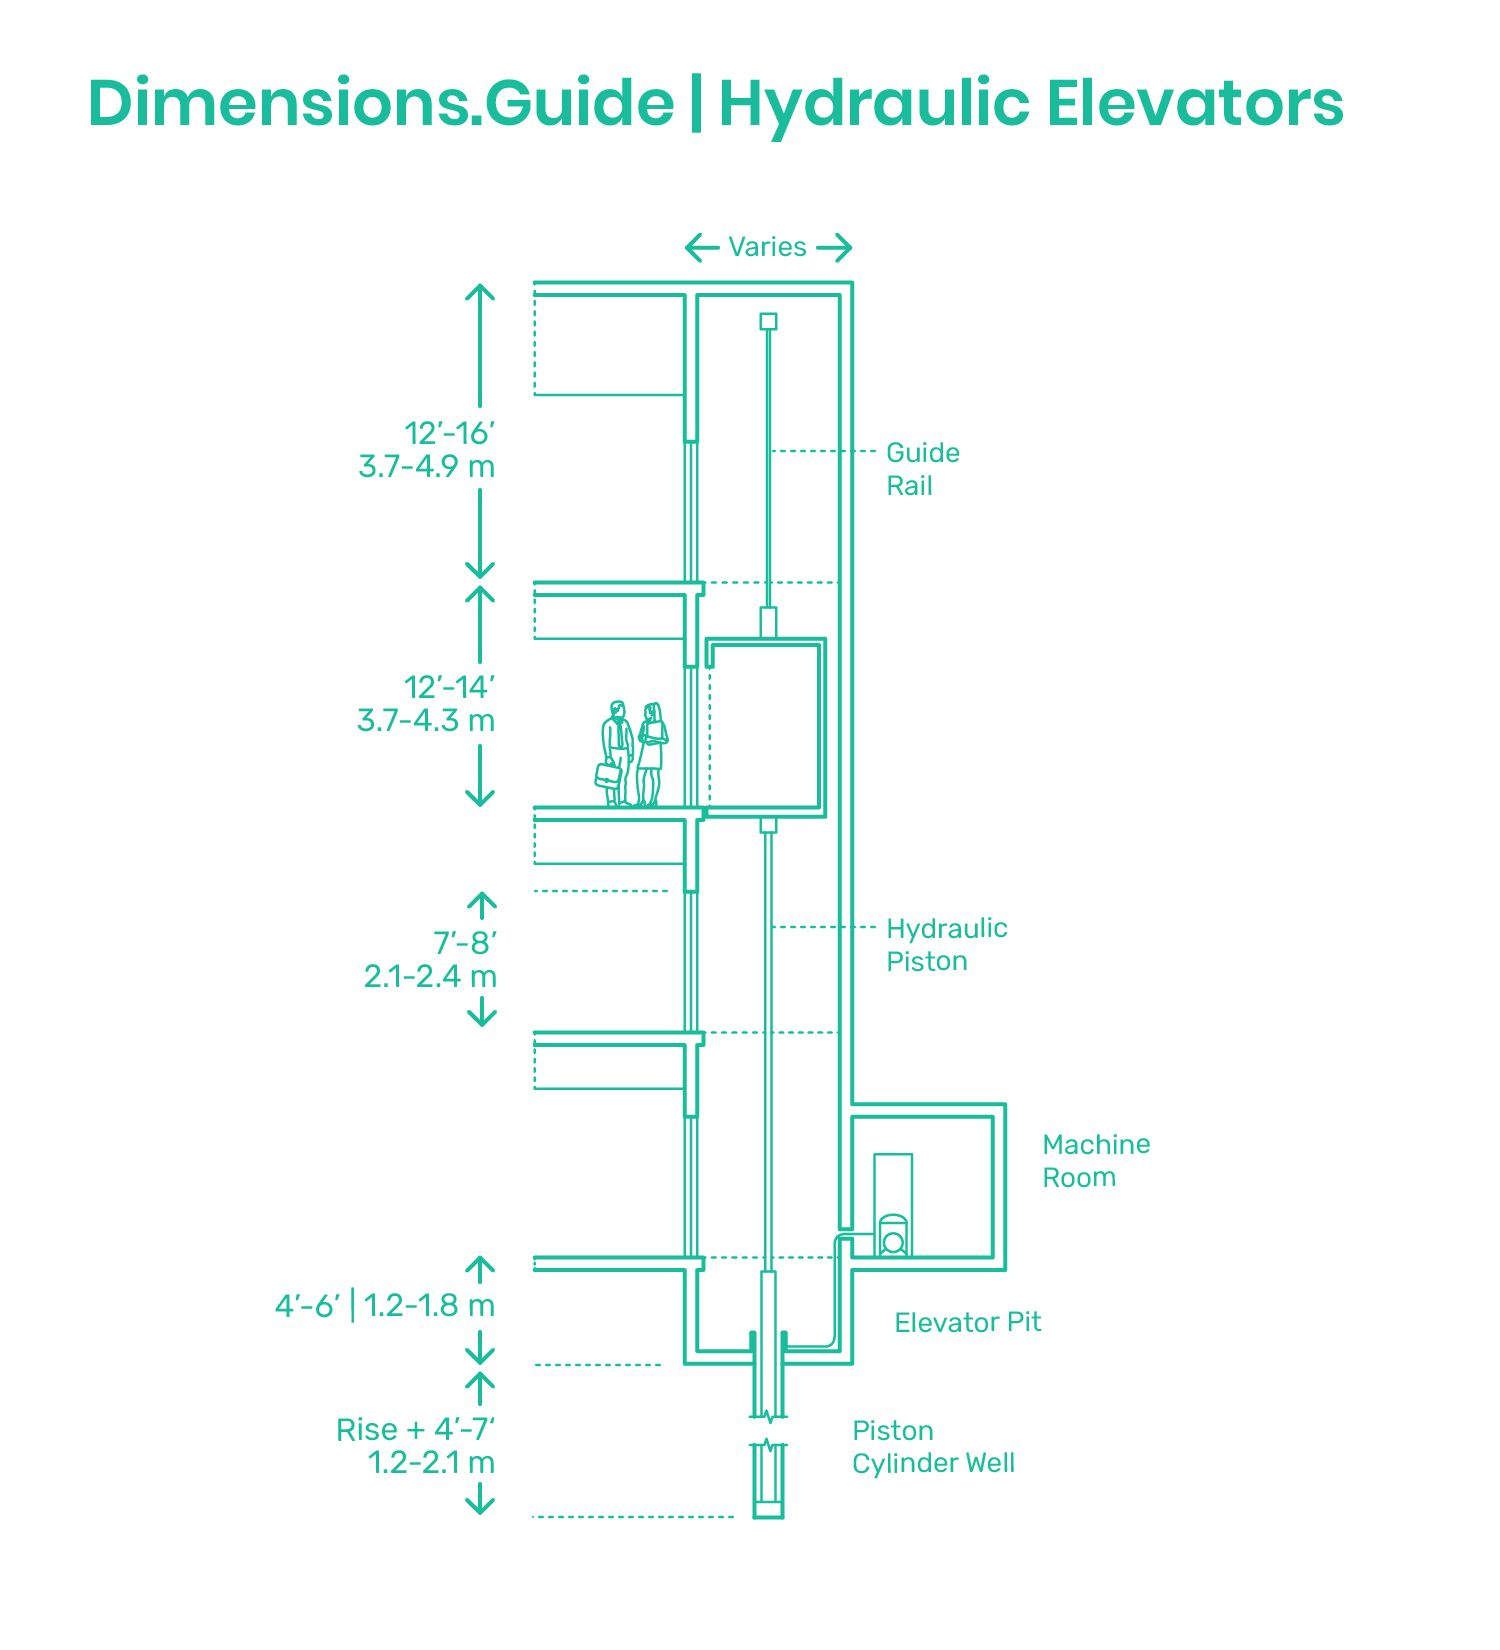 Hydraulic Elevators Lifts Elevator Design Architectural Section Elevation